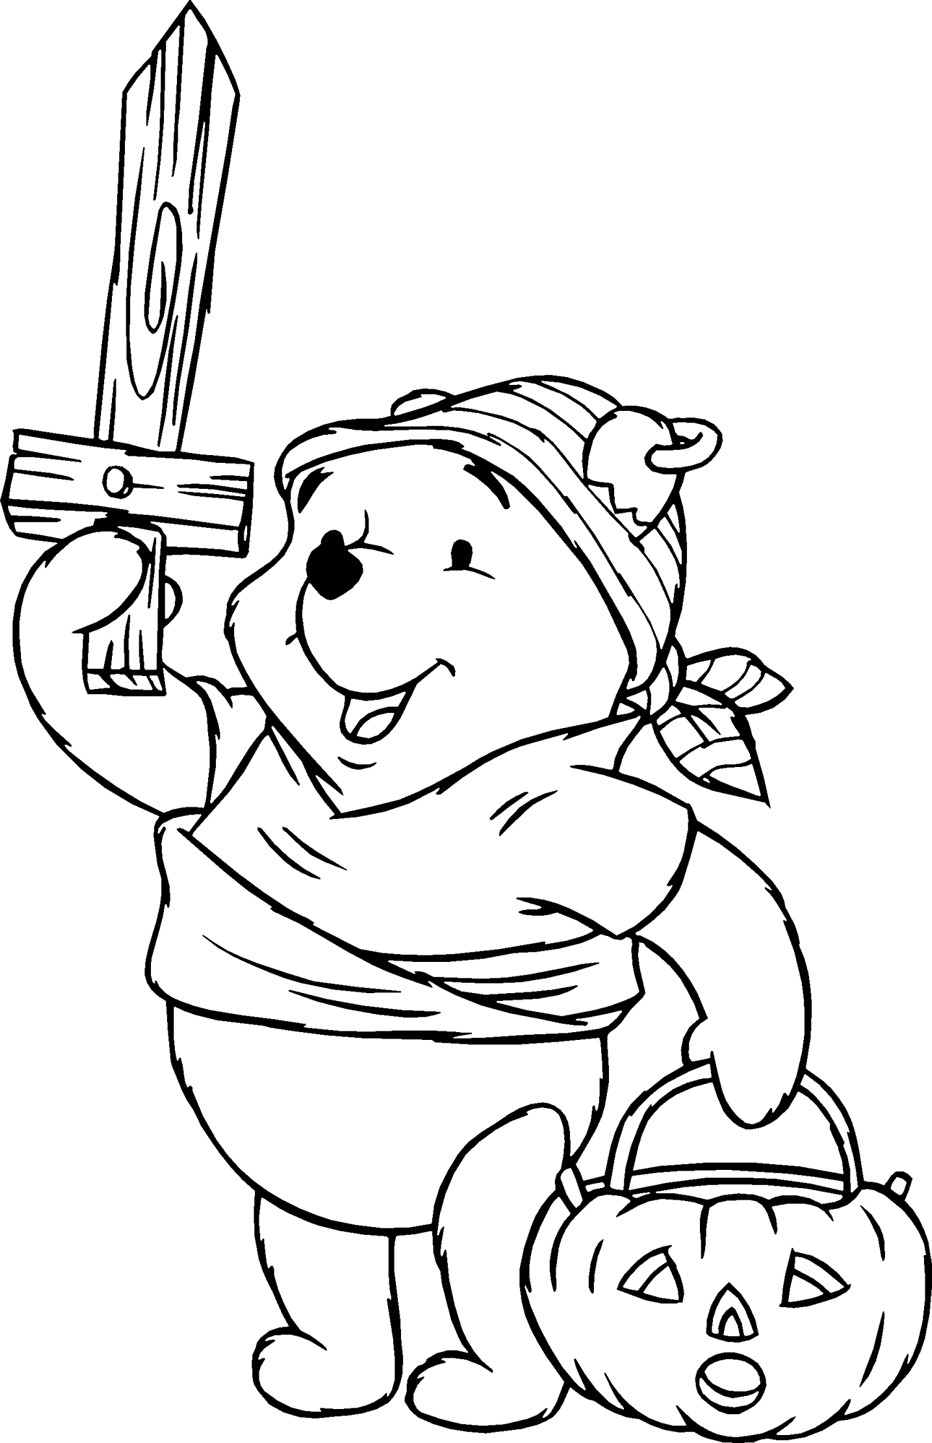 932x1443 Free Printable Halloween Coloring Pages For Kids